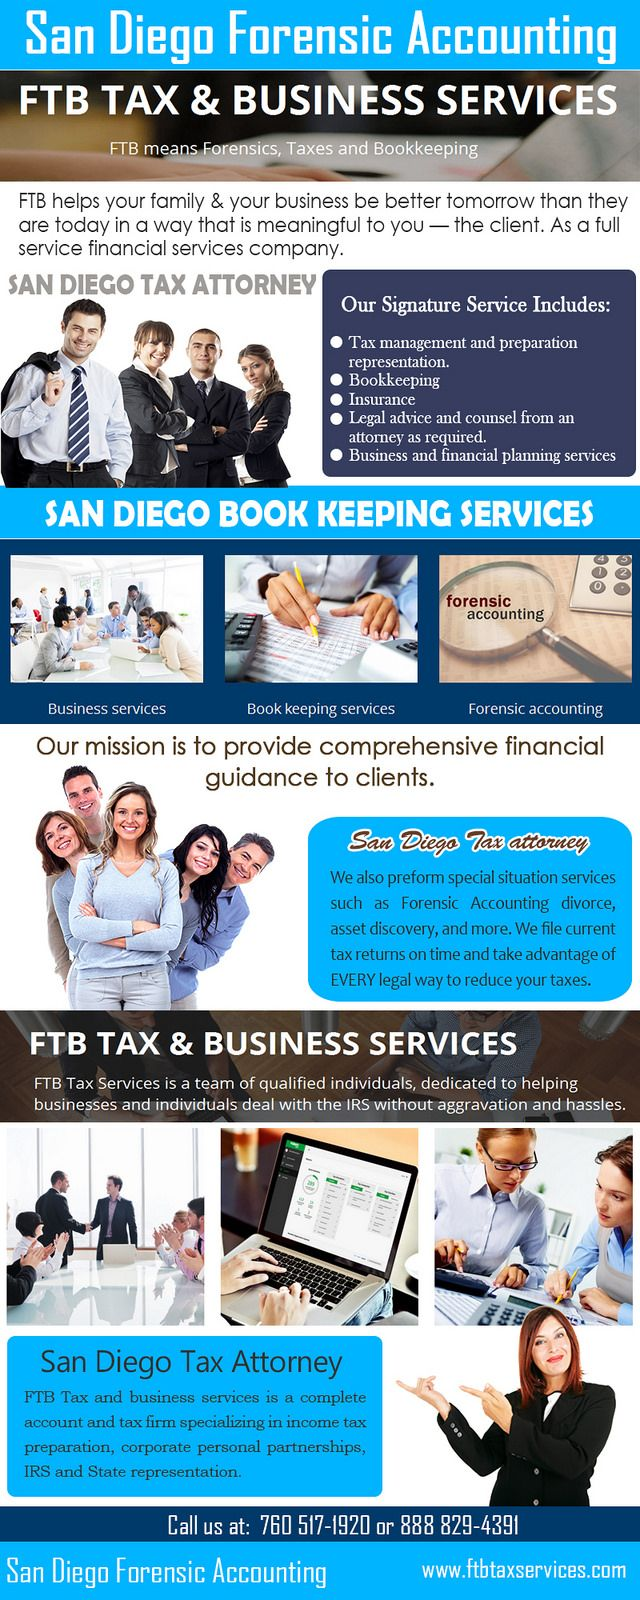 Best 25 forensic accounting ideas on pinterest accounting major httpsflicpsjkzmj san diego forensic accounting 1betcityfo Image collections